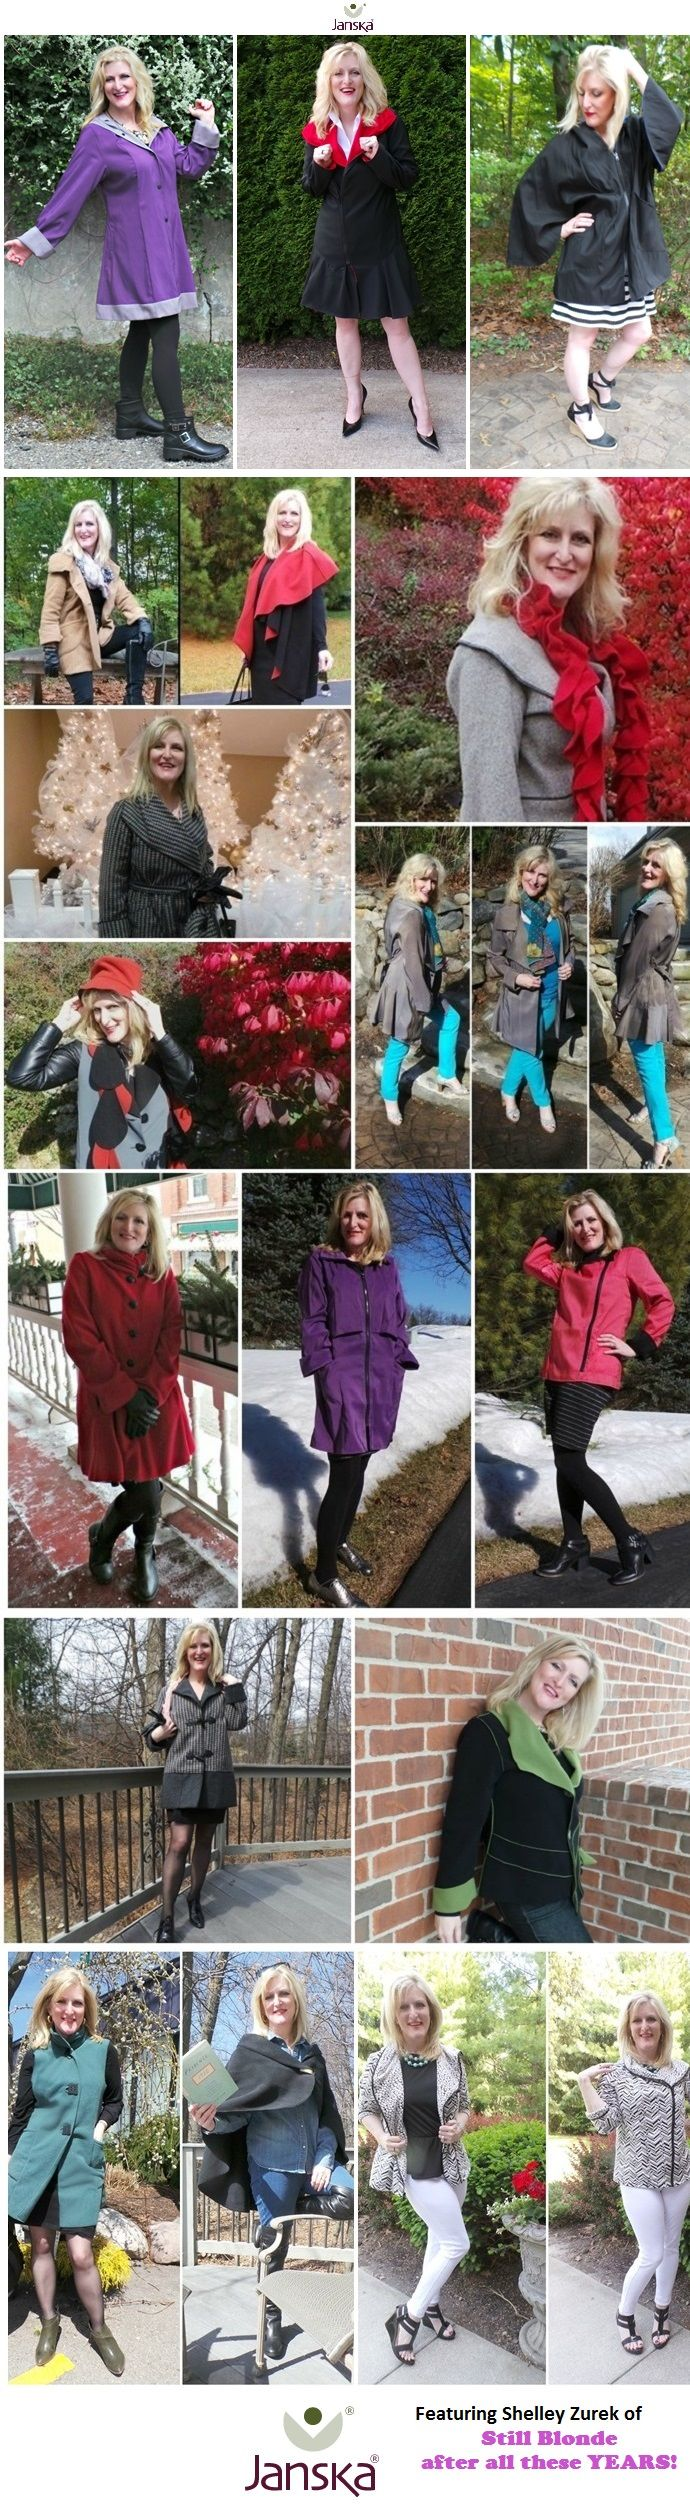 Looking for a new Fall Jacket? Here's some choices for @janskaclothing  Product Line modeled by Still Blonde after all these YEARS, The Chief Blonde, Shelley Zurek